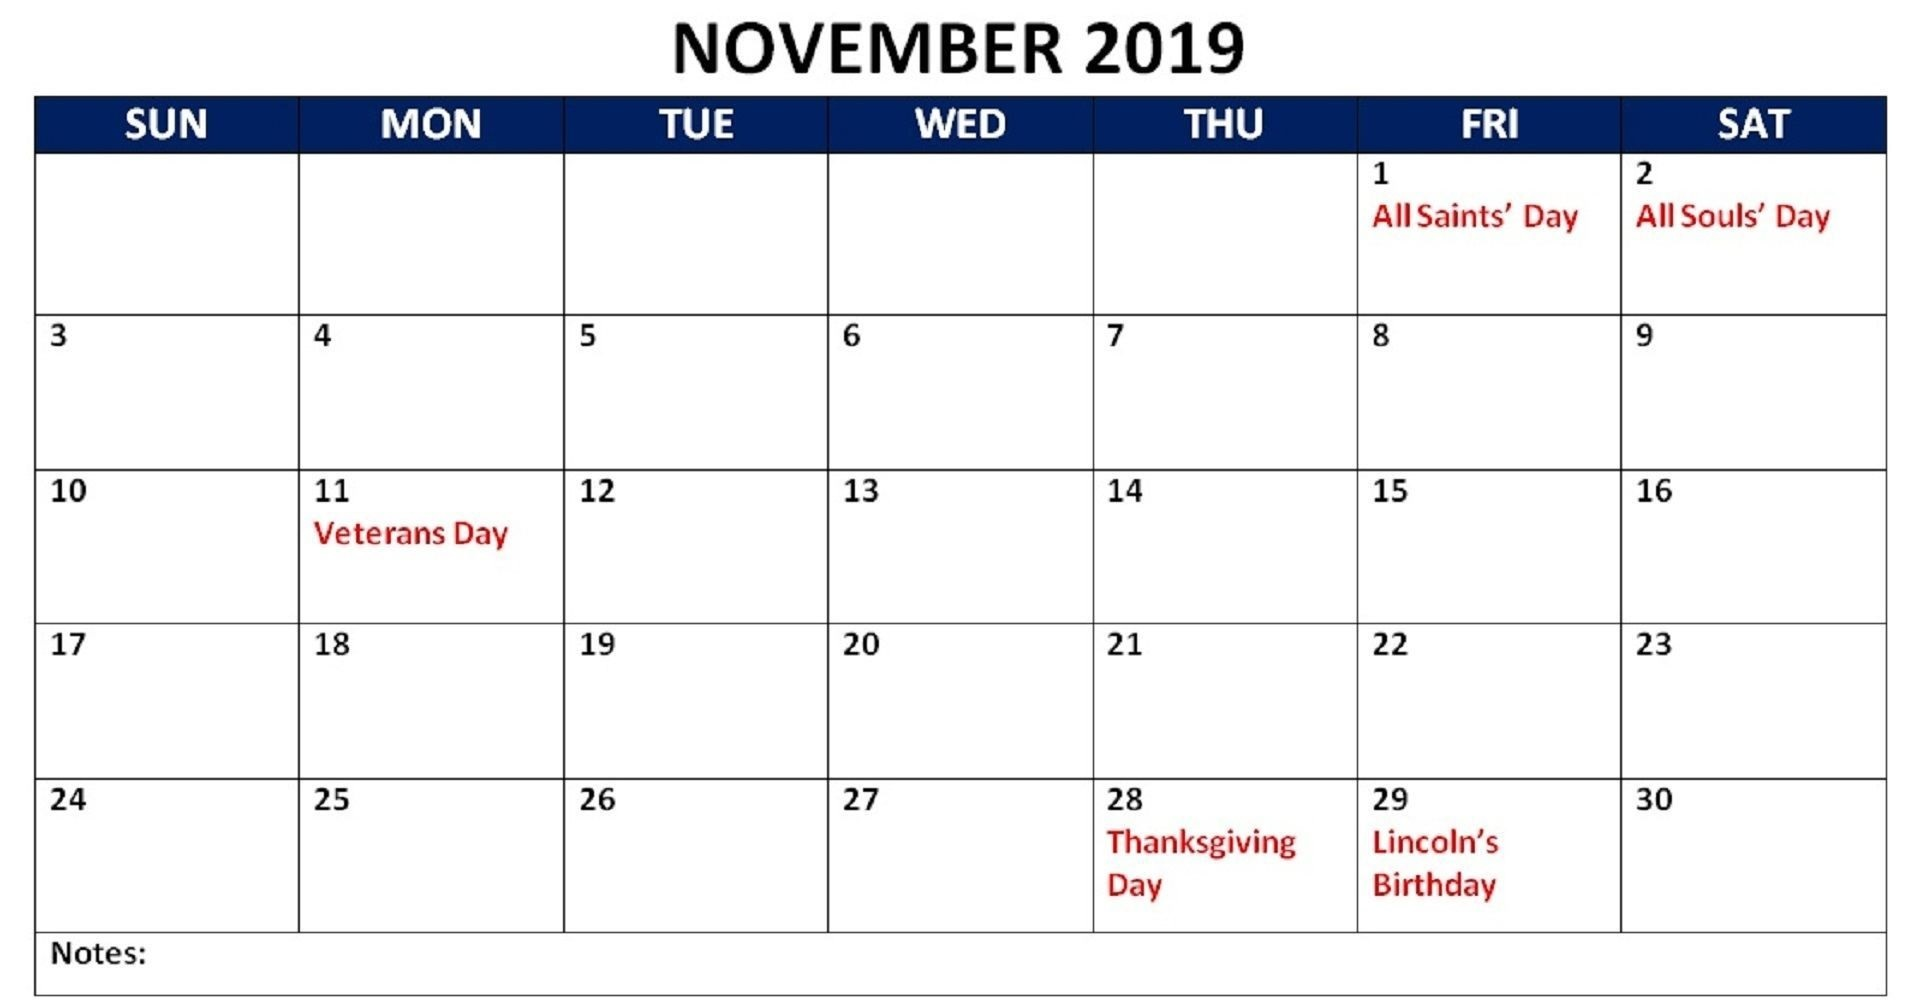 November 2019 Calendar with Holidays India